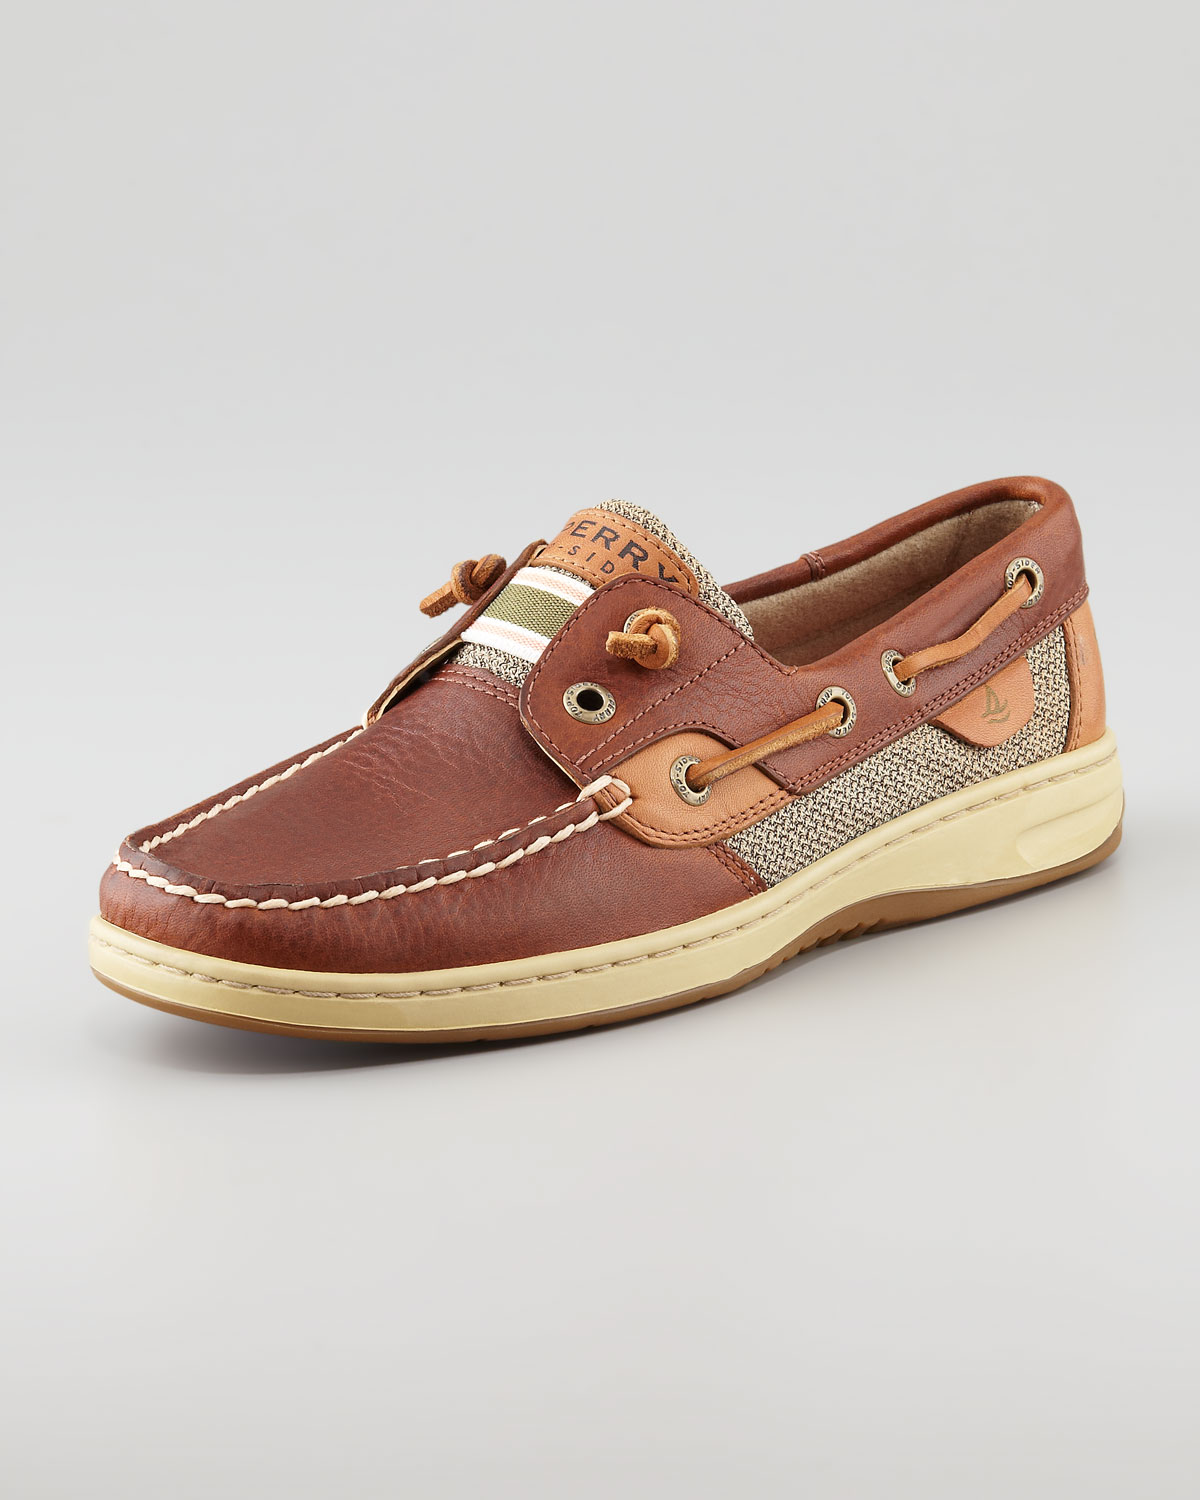 Sperry Top-sider Bluefish Tiefree Boat Shoe Tan in Brown ...